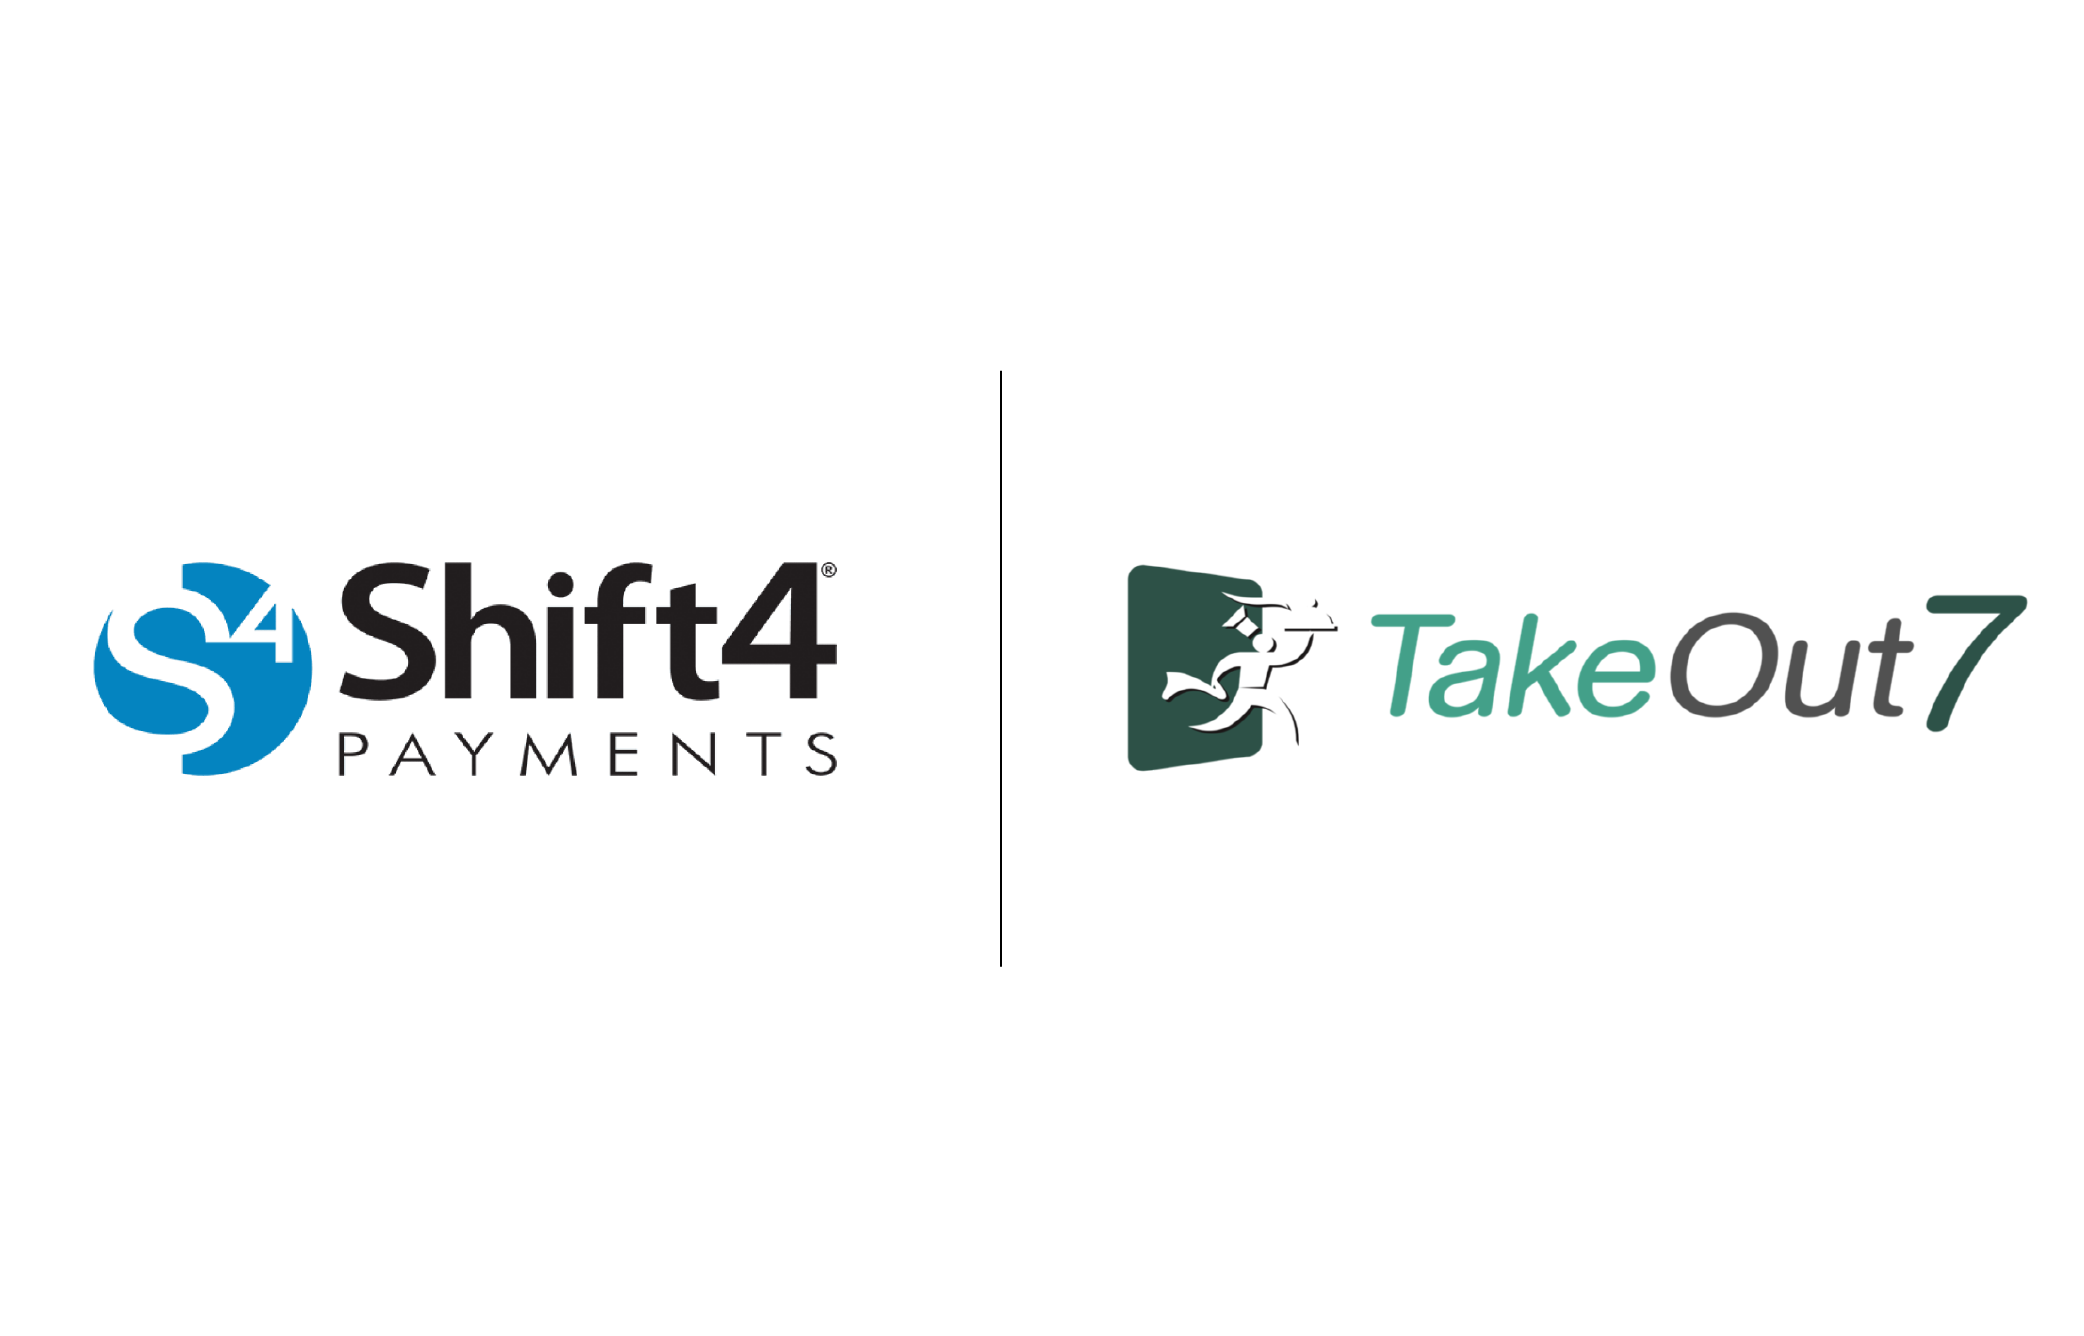 Shift4 Payments TakeOut7-01